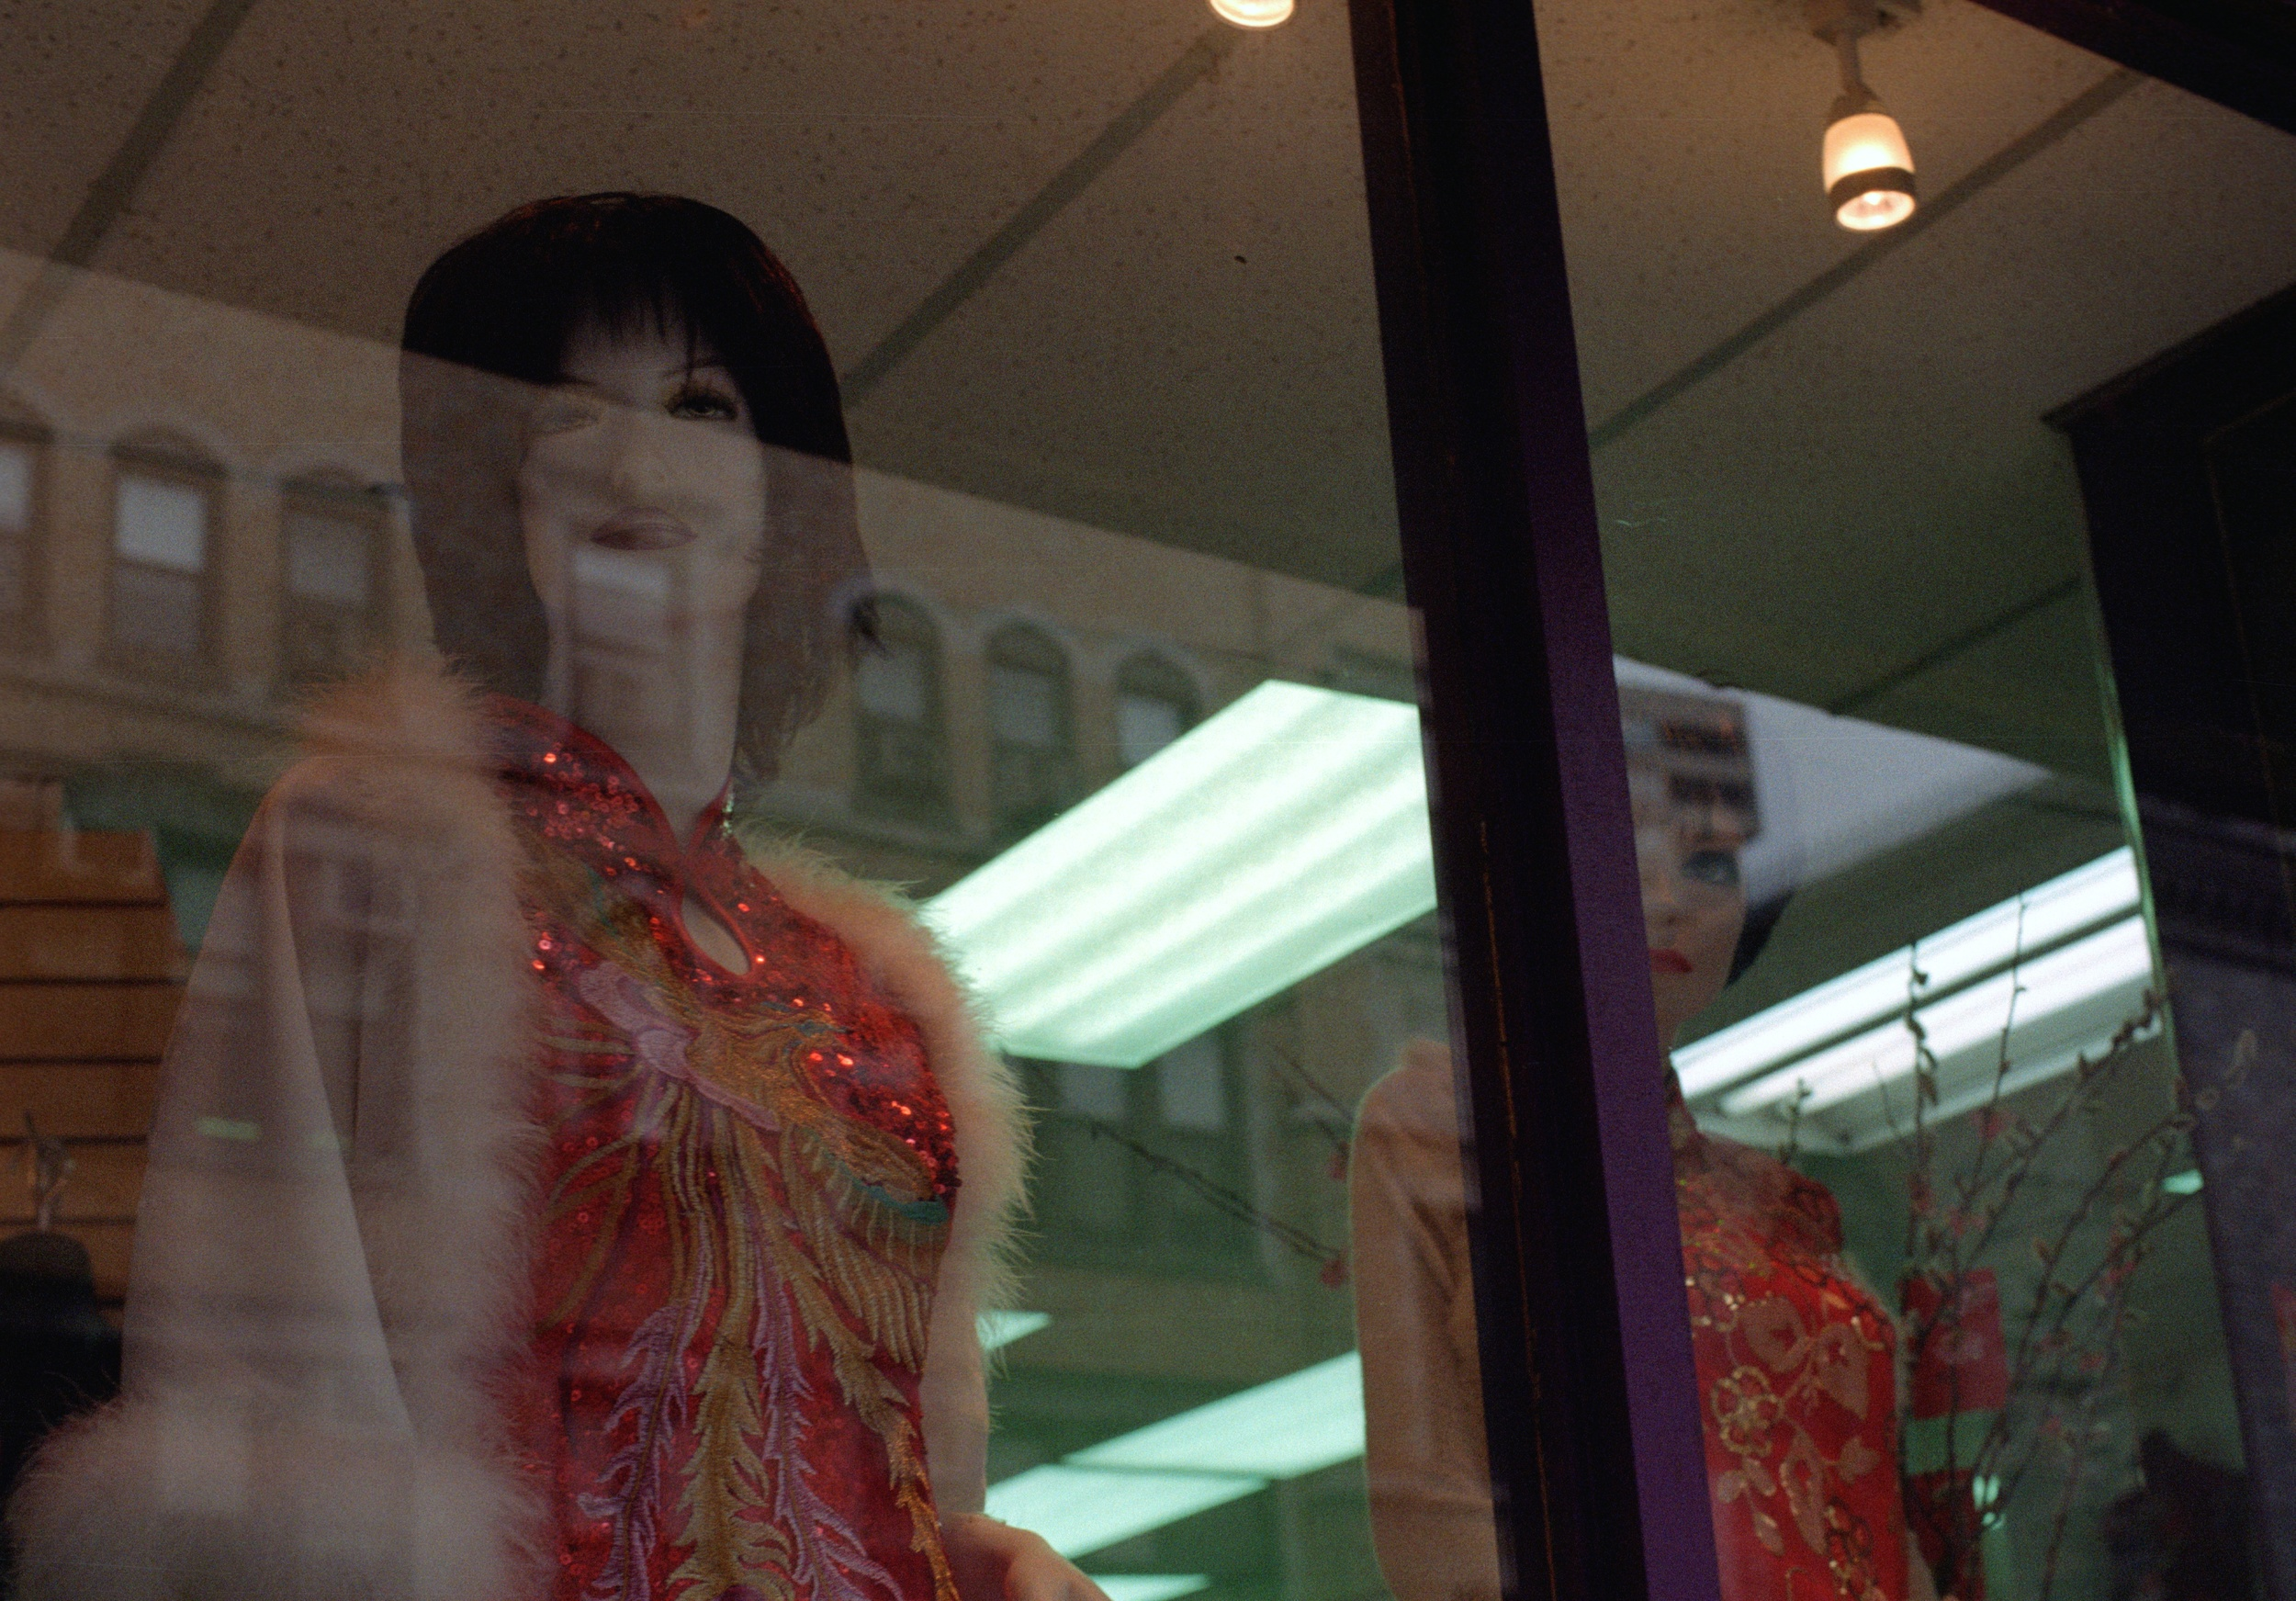 Mannequin No.2, New York City, NY. 2014. C-Print.